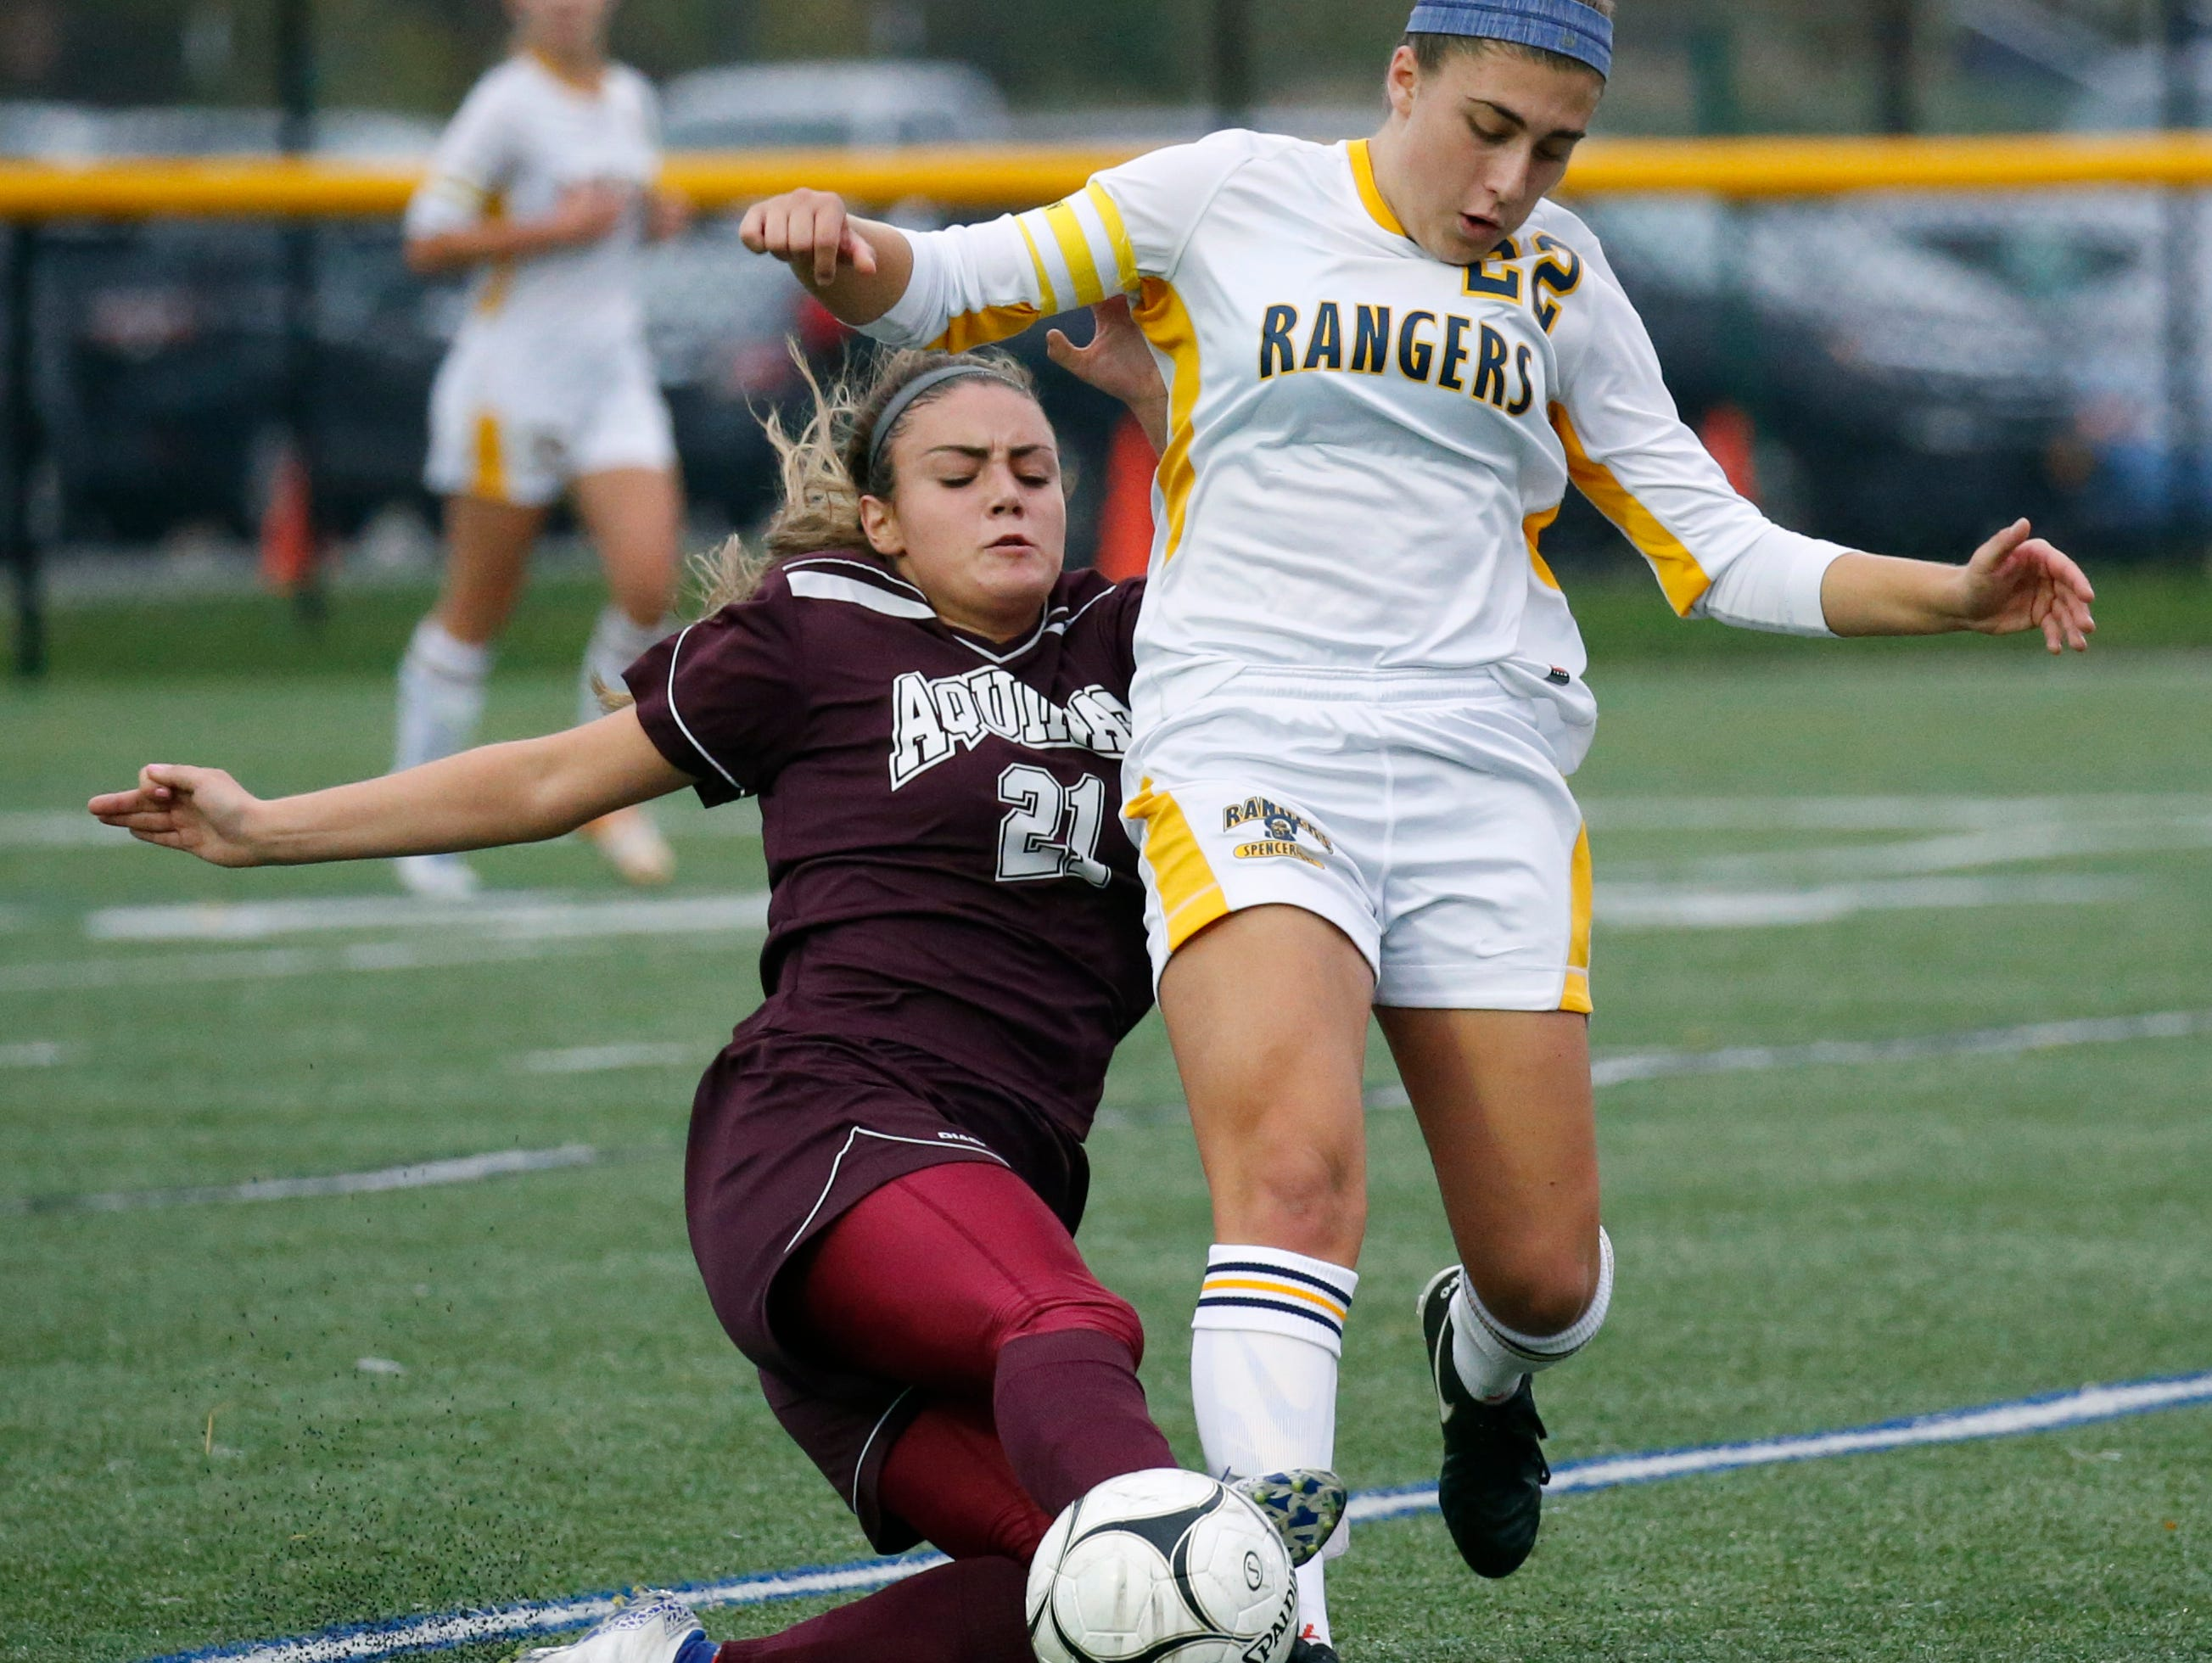 Aquinas' Regan Nugent reaches for the ball in front of Spencerport's Olivia Wall in the first half at Webster Schroeder High School.